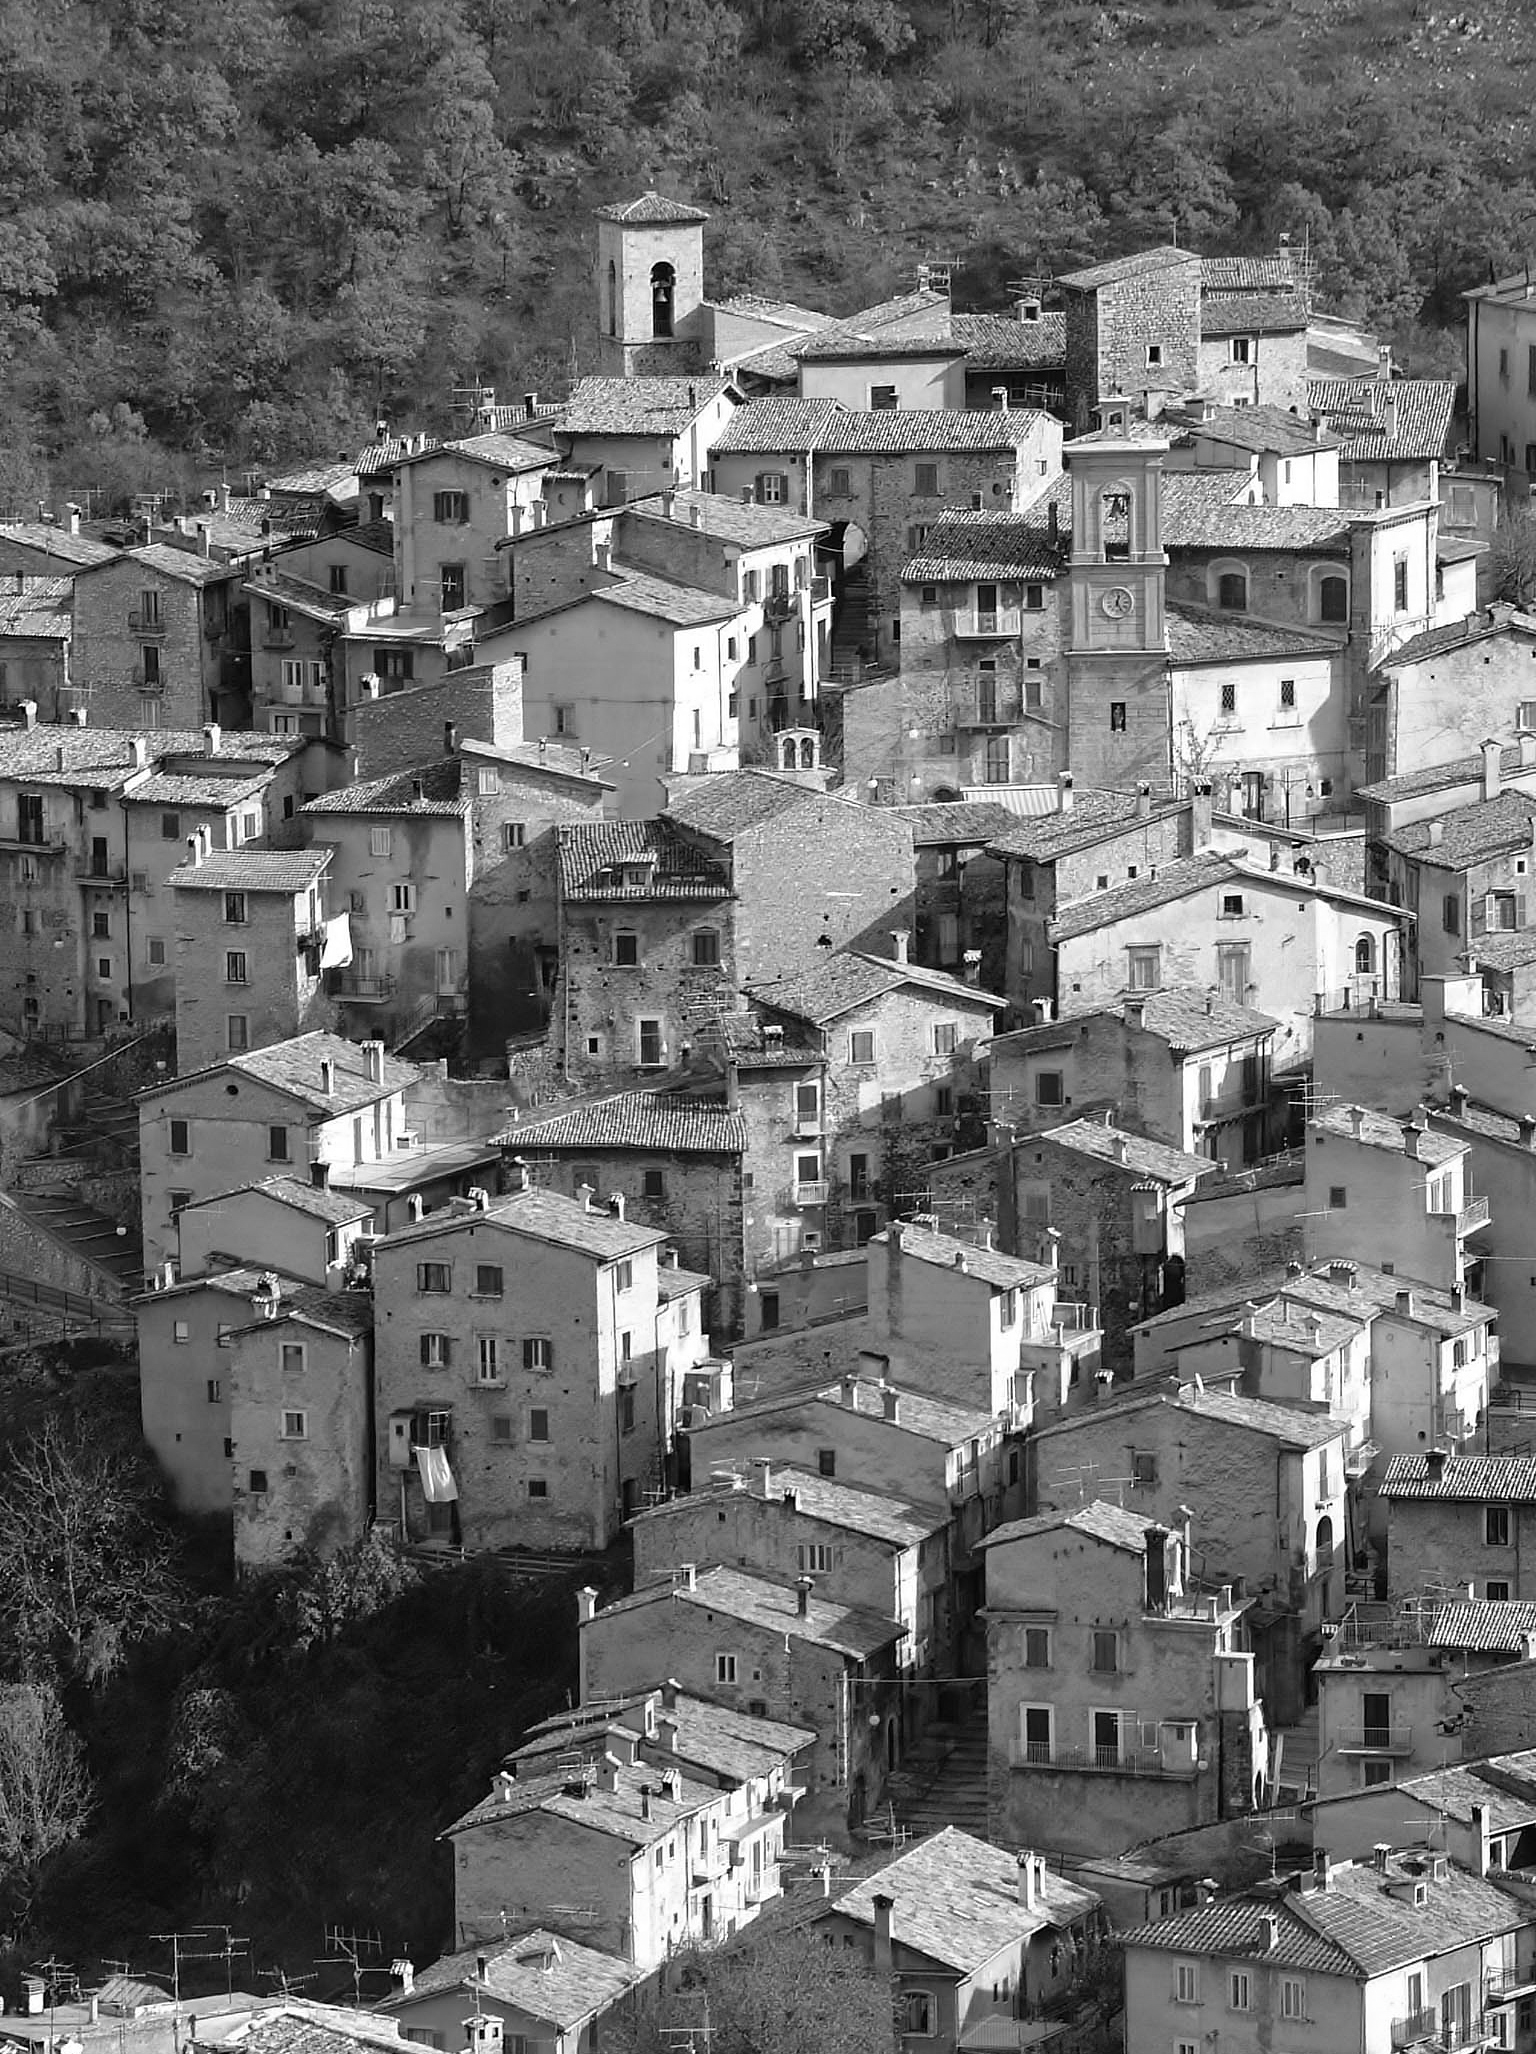 Tribute to Scanno, the city Photographer...